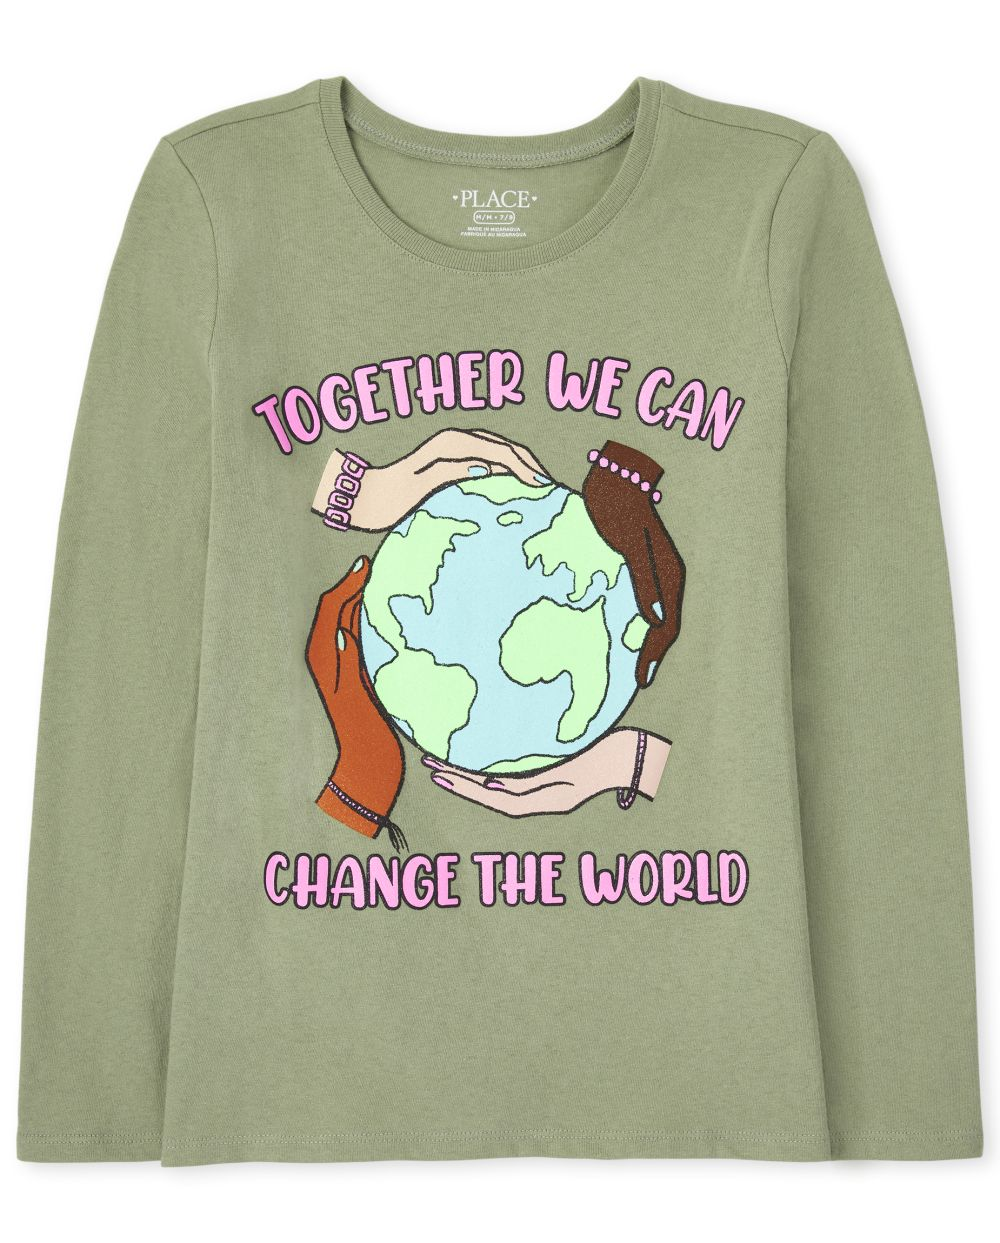 Change The World Graphic Tee - Green T-Shirt